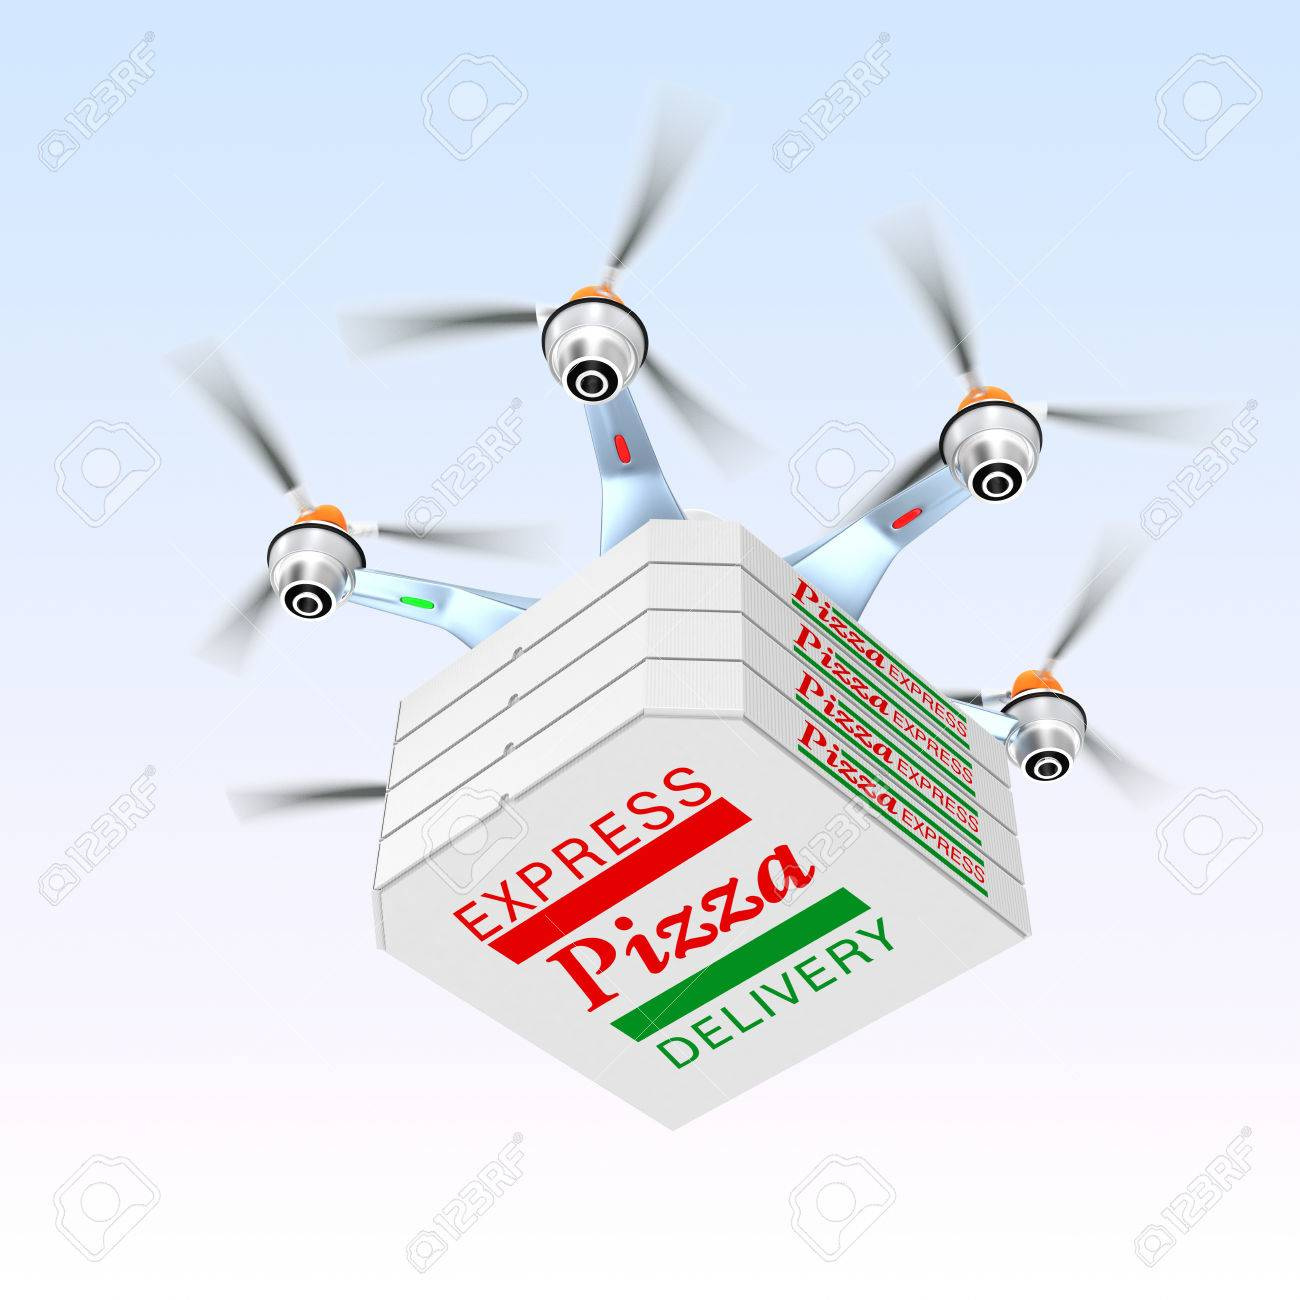 Drone Carrying Pizza For Fast Food Delivery Concept Stock Photo